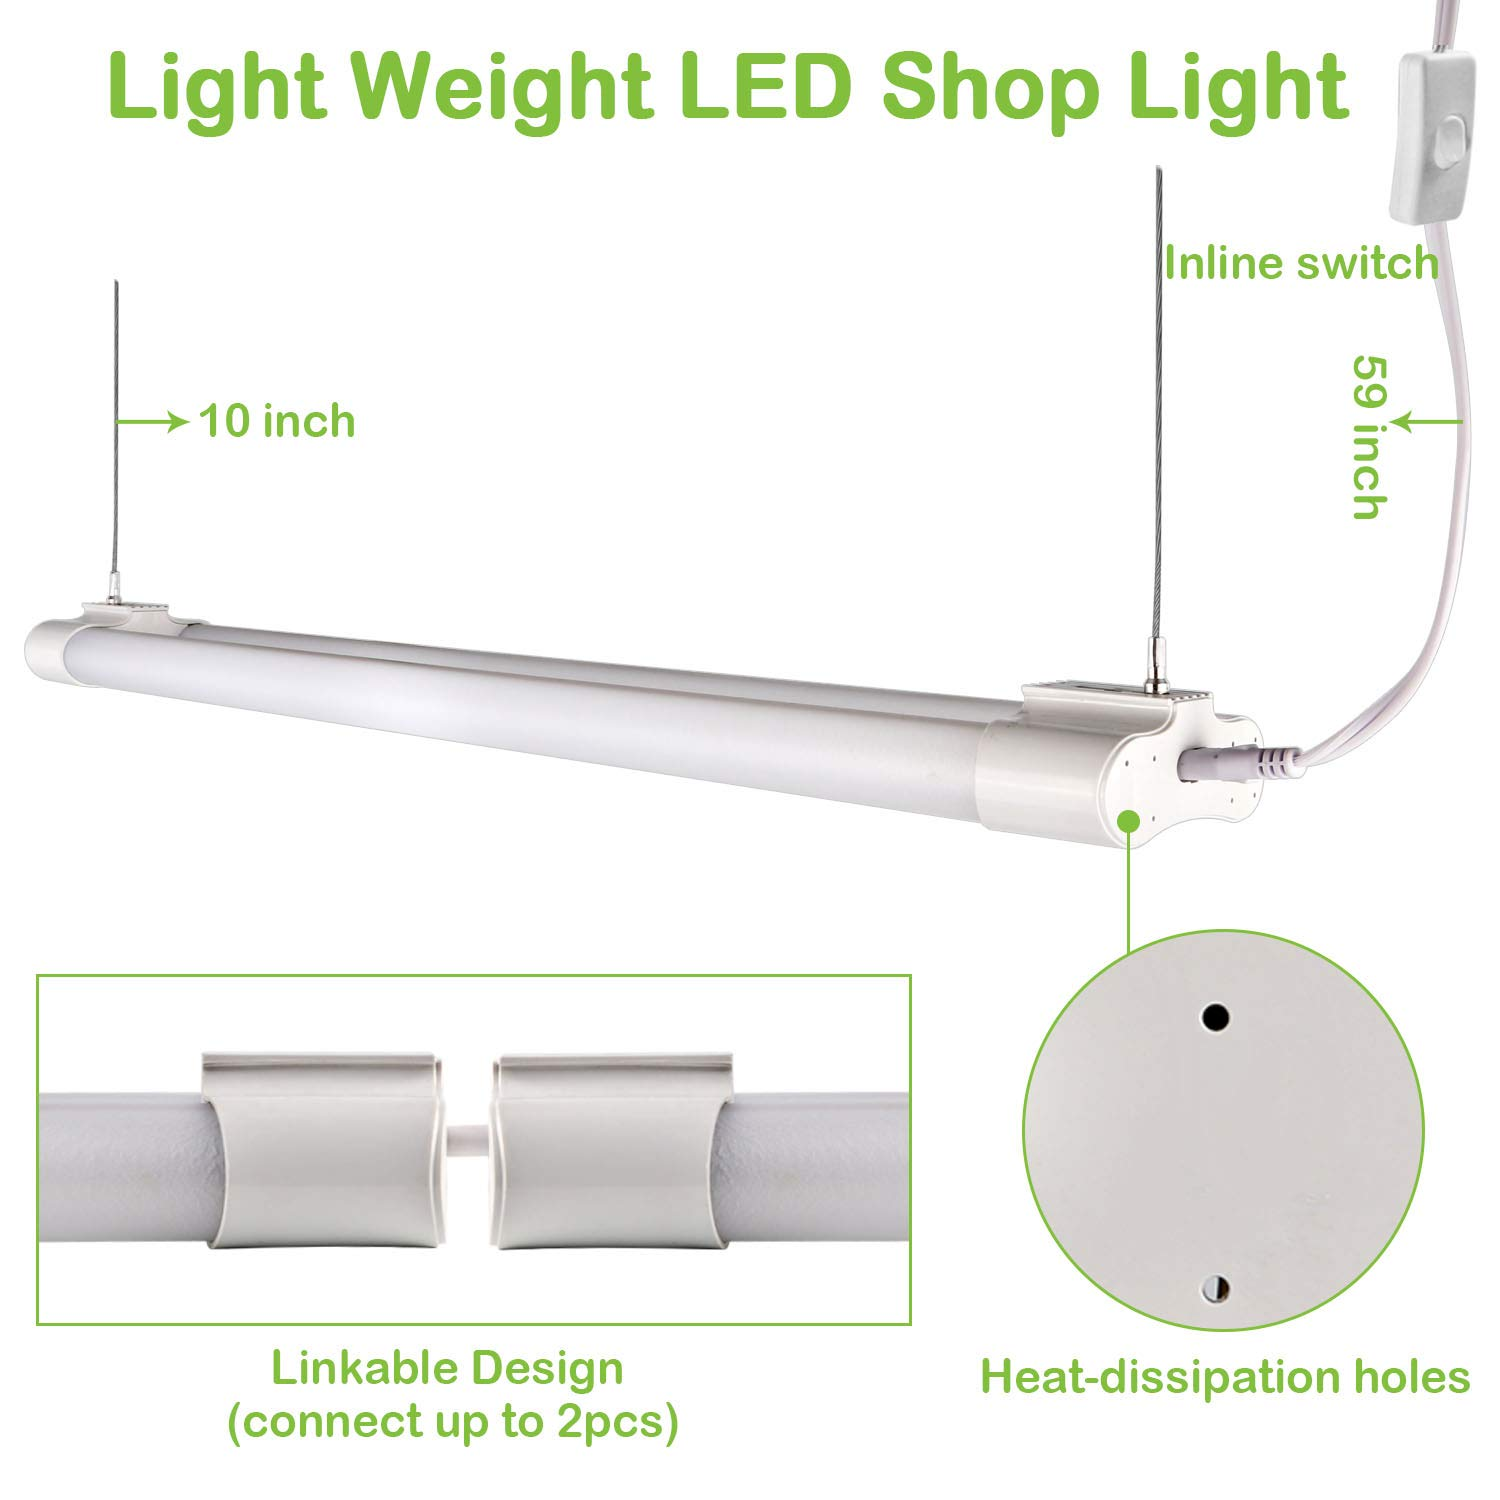 Hykolity 4ft 36w Linkable Led Shop Light With Cord 3600lm Hanging Wiring A Fluorescent Or Flushmount Garage 5000k Overhead Workbench Weight Shatter Proof